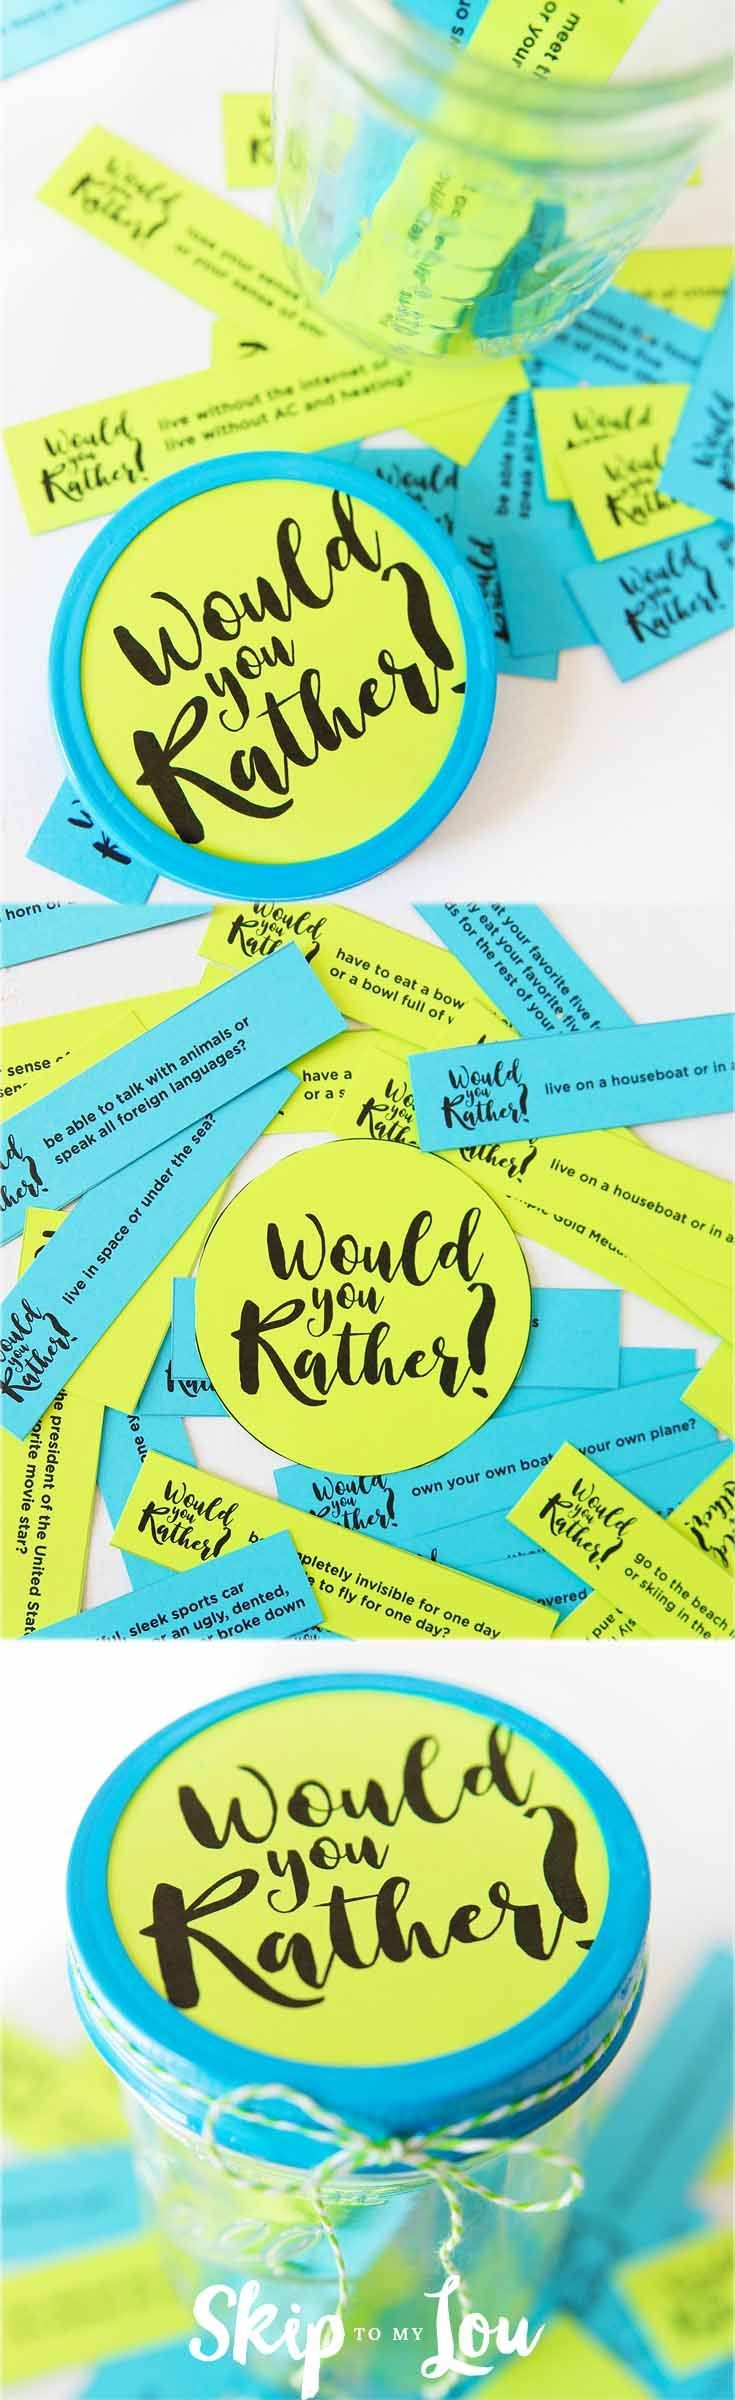 Free Printable Would You Rather Questions For Kids Perfect Car Or Plane Rides Camping And More To Keep Bored Entertained While Traveling